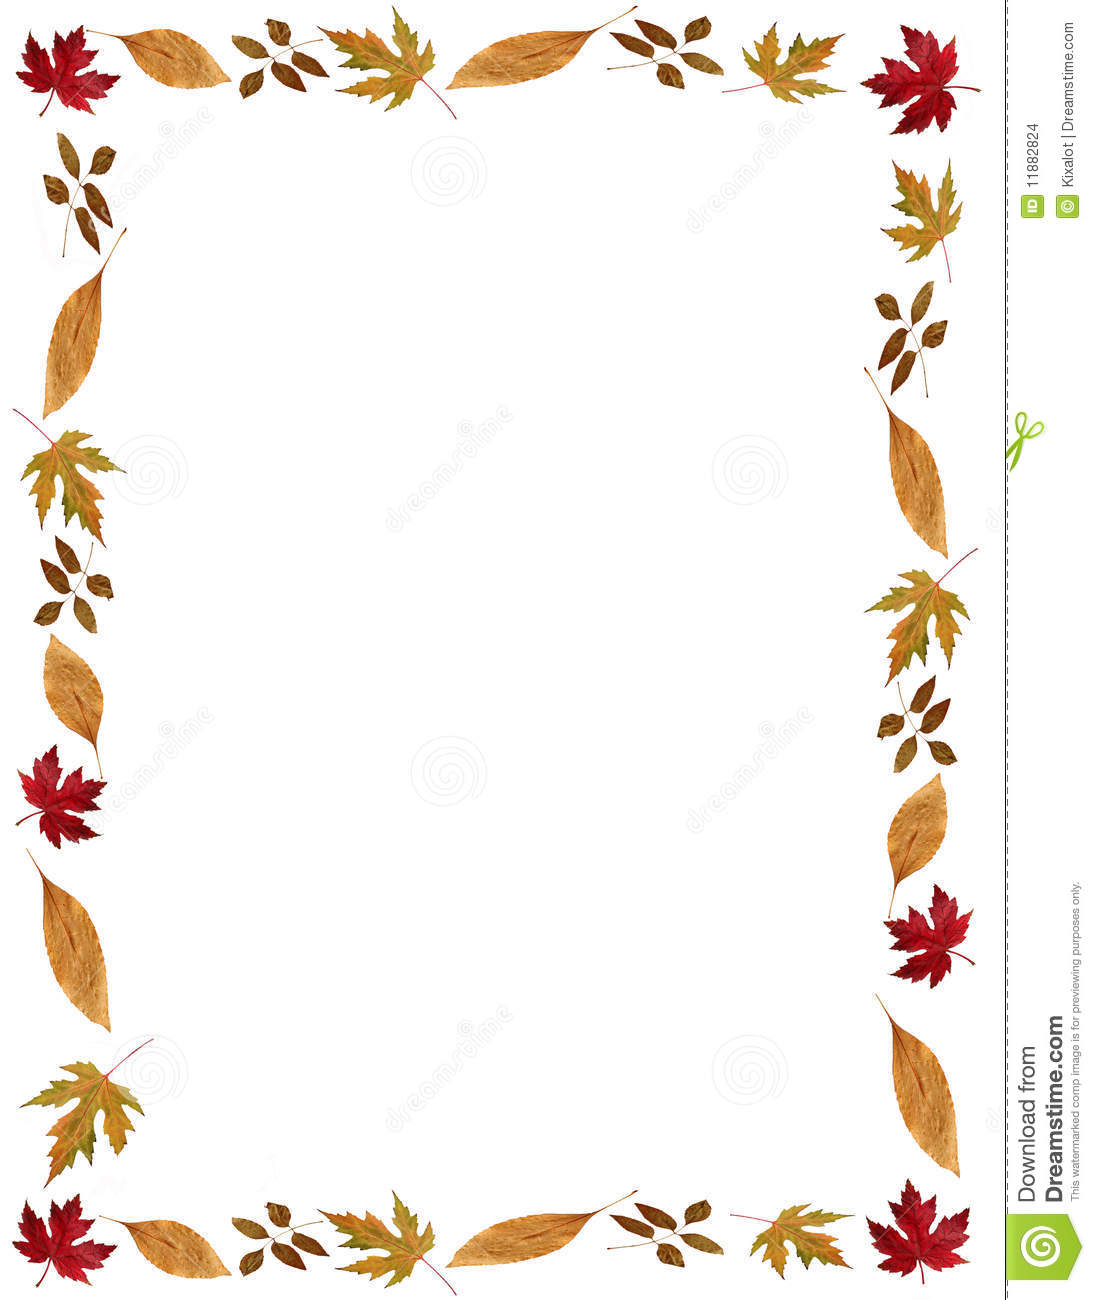 Stock Images Fall Holidays Leafy Frame Border Image11882824 on modern lobed